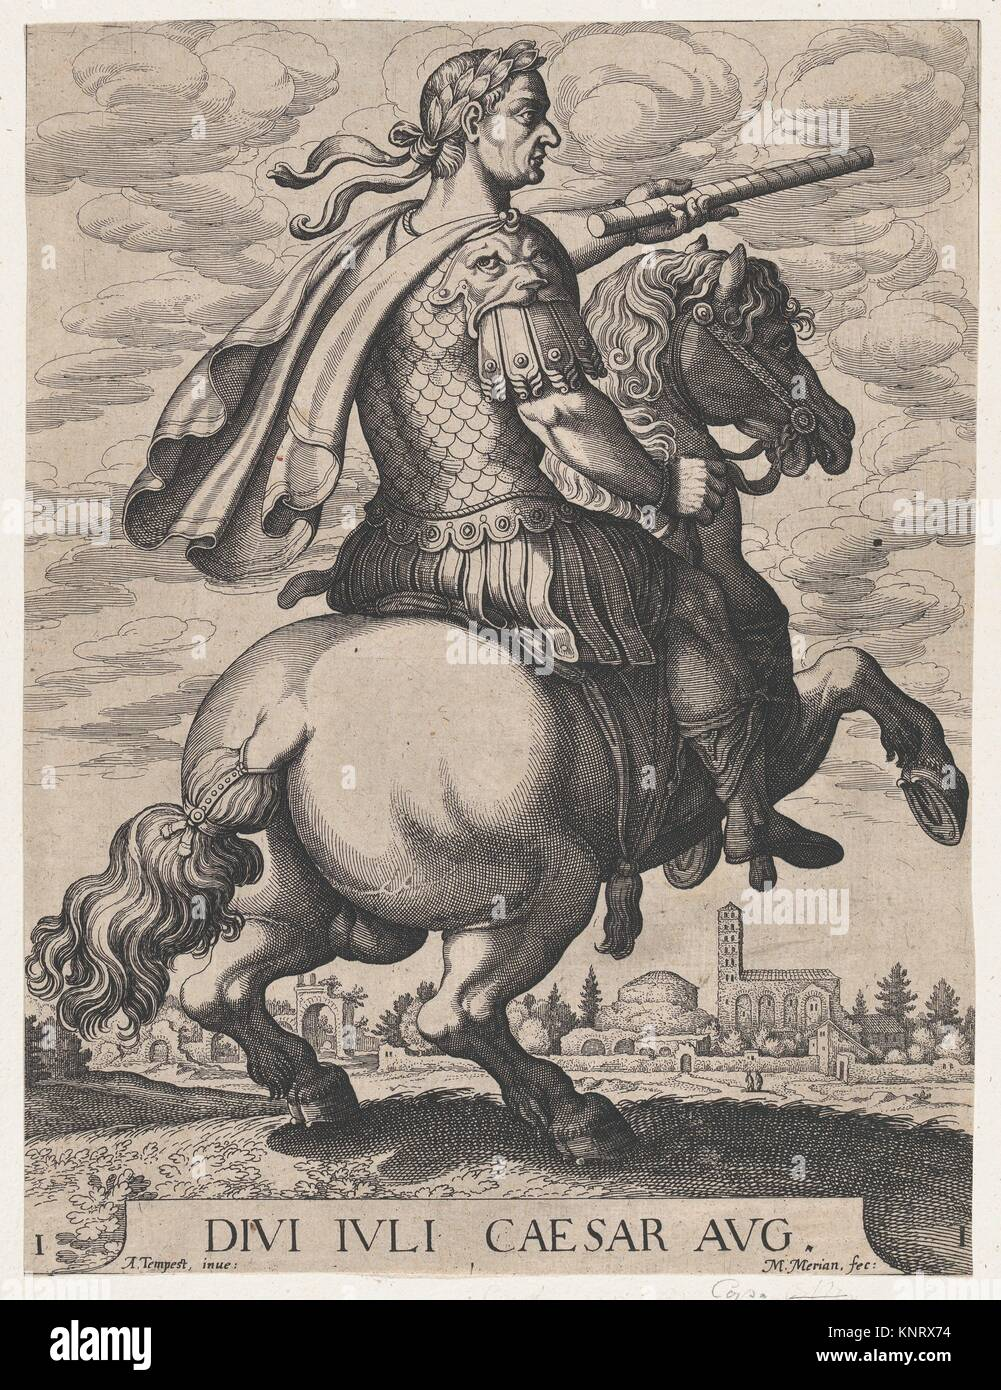 Plate 1: Emperor Julius Caesar on Horseback, from ´ The First Twelve Roman Caesars´, after Tempesta. Artist: Matthäus Merian the Elder (Swiss, Basel Stock Photo